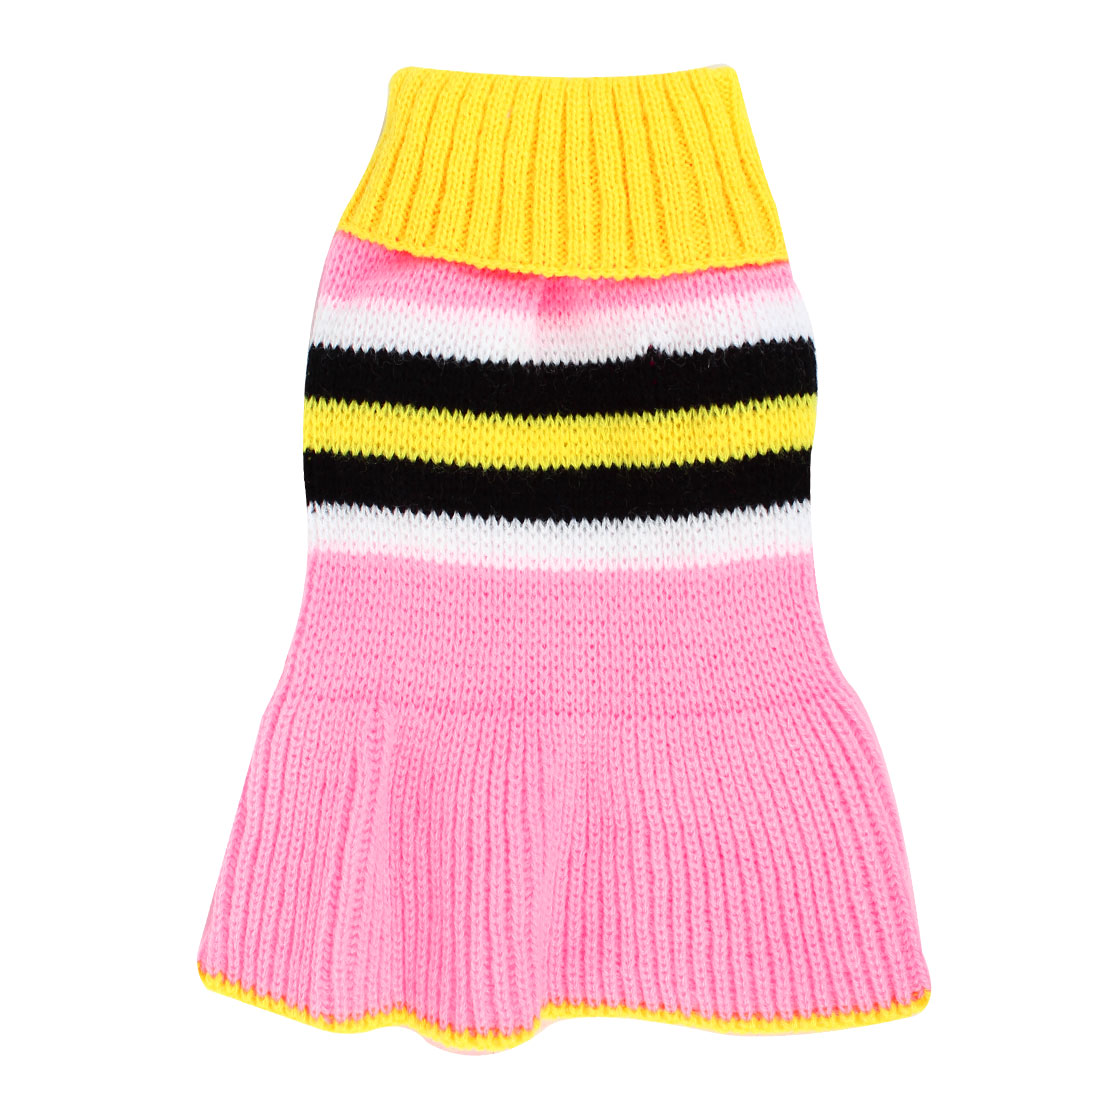 Pet Dog Chihuahua Yellow Pink Ribbed Cuff Knitwear Turtleneck Dress Apparel Sweater Size XXS